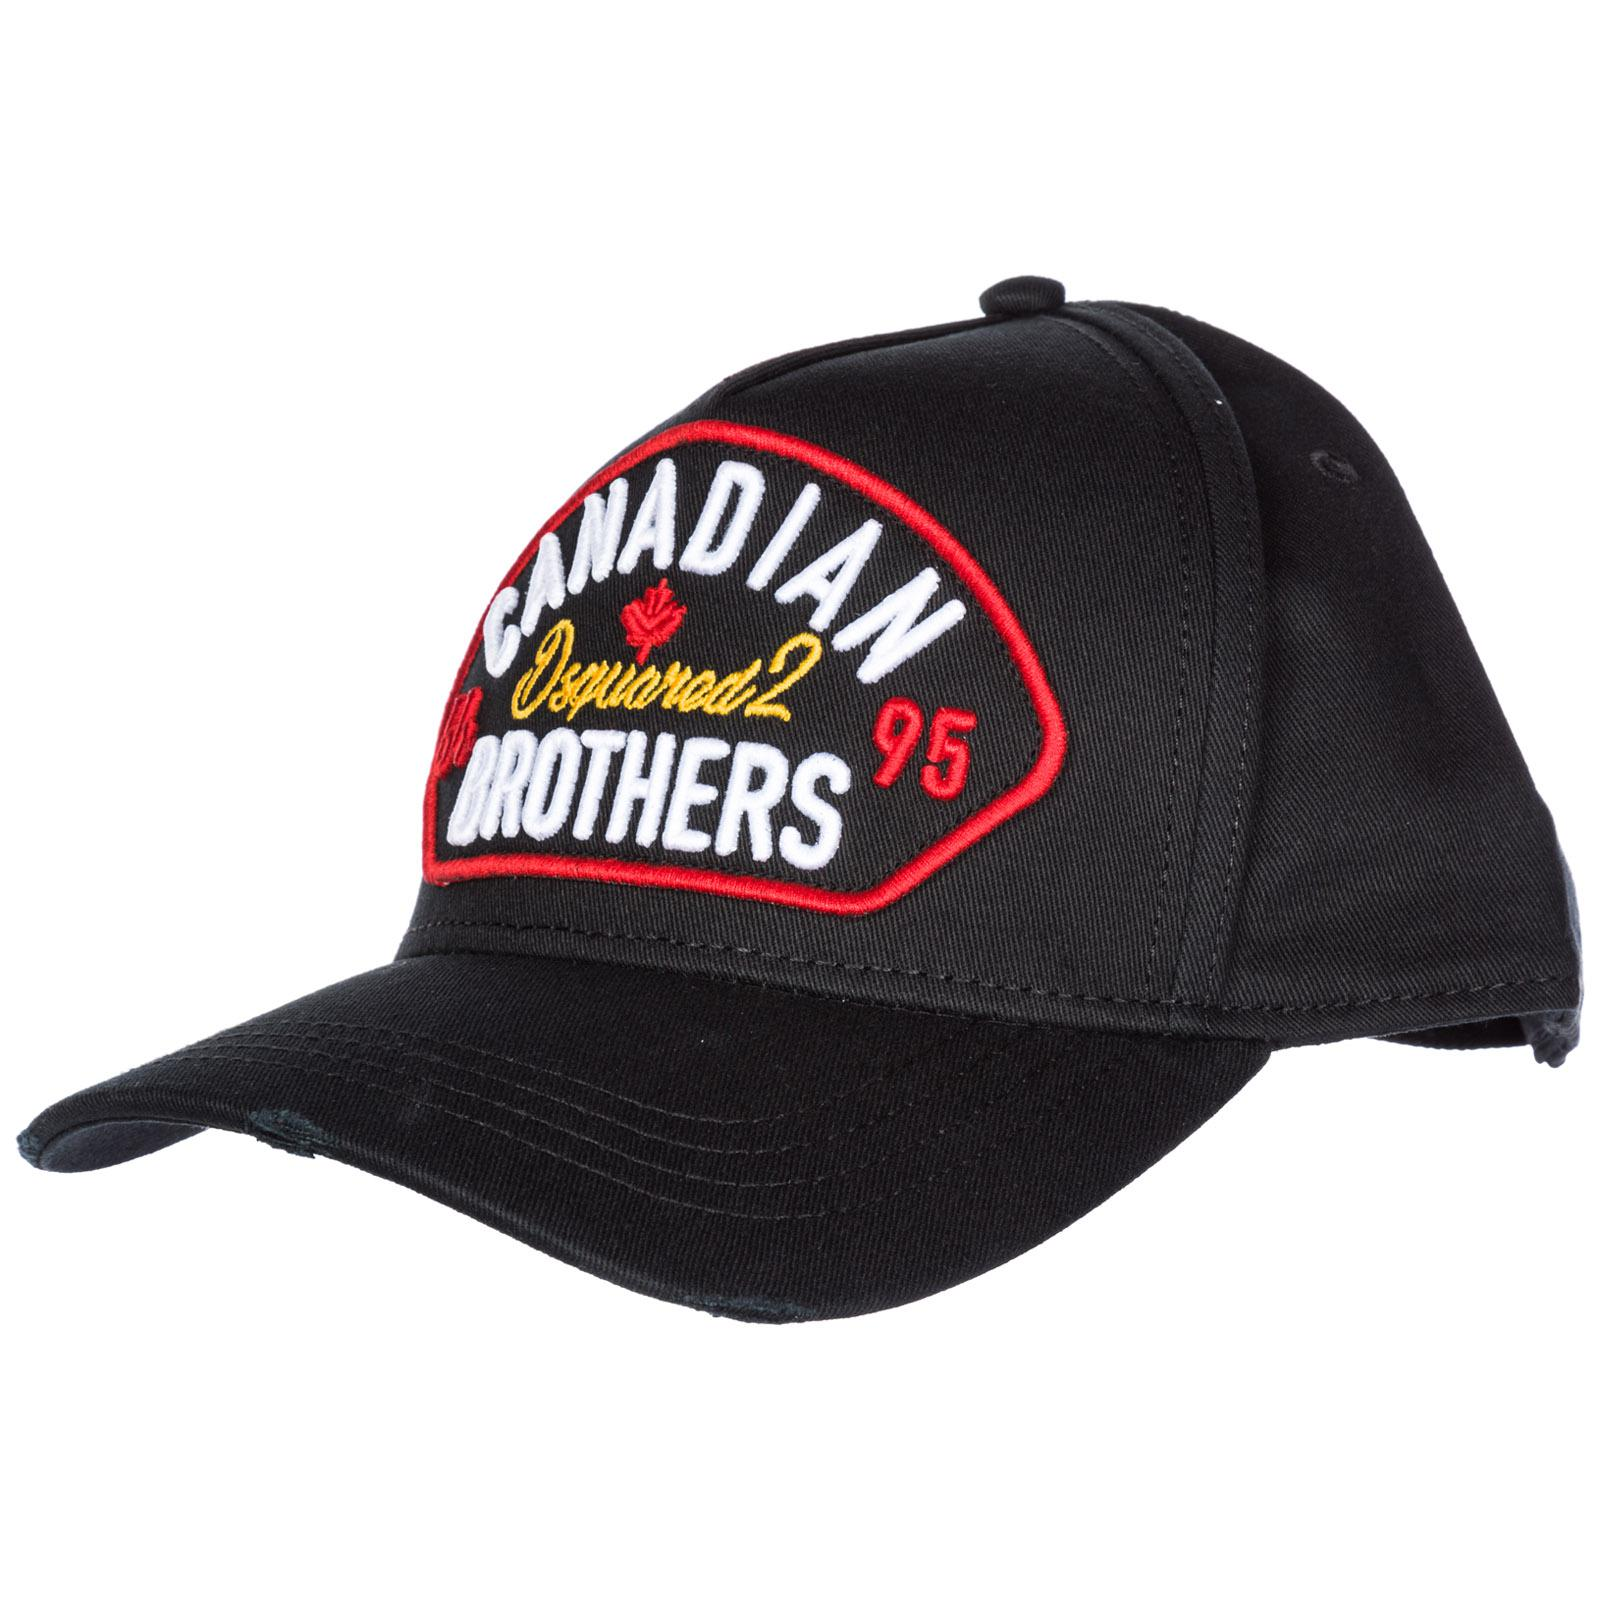 Dsquared² Adjustable Cotton Hat Baseball Cap Canadian Brothers in ... 4482933e190e